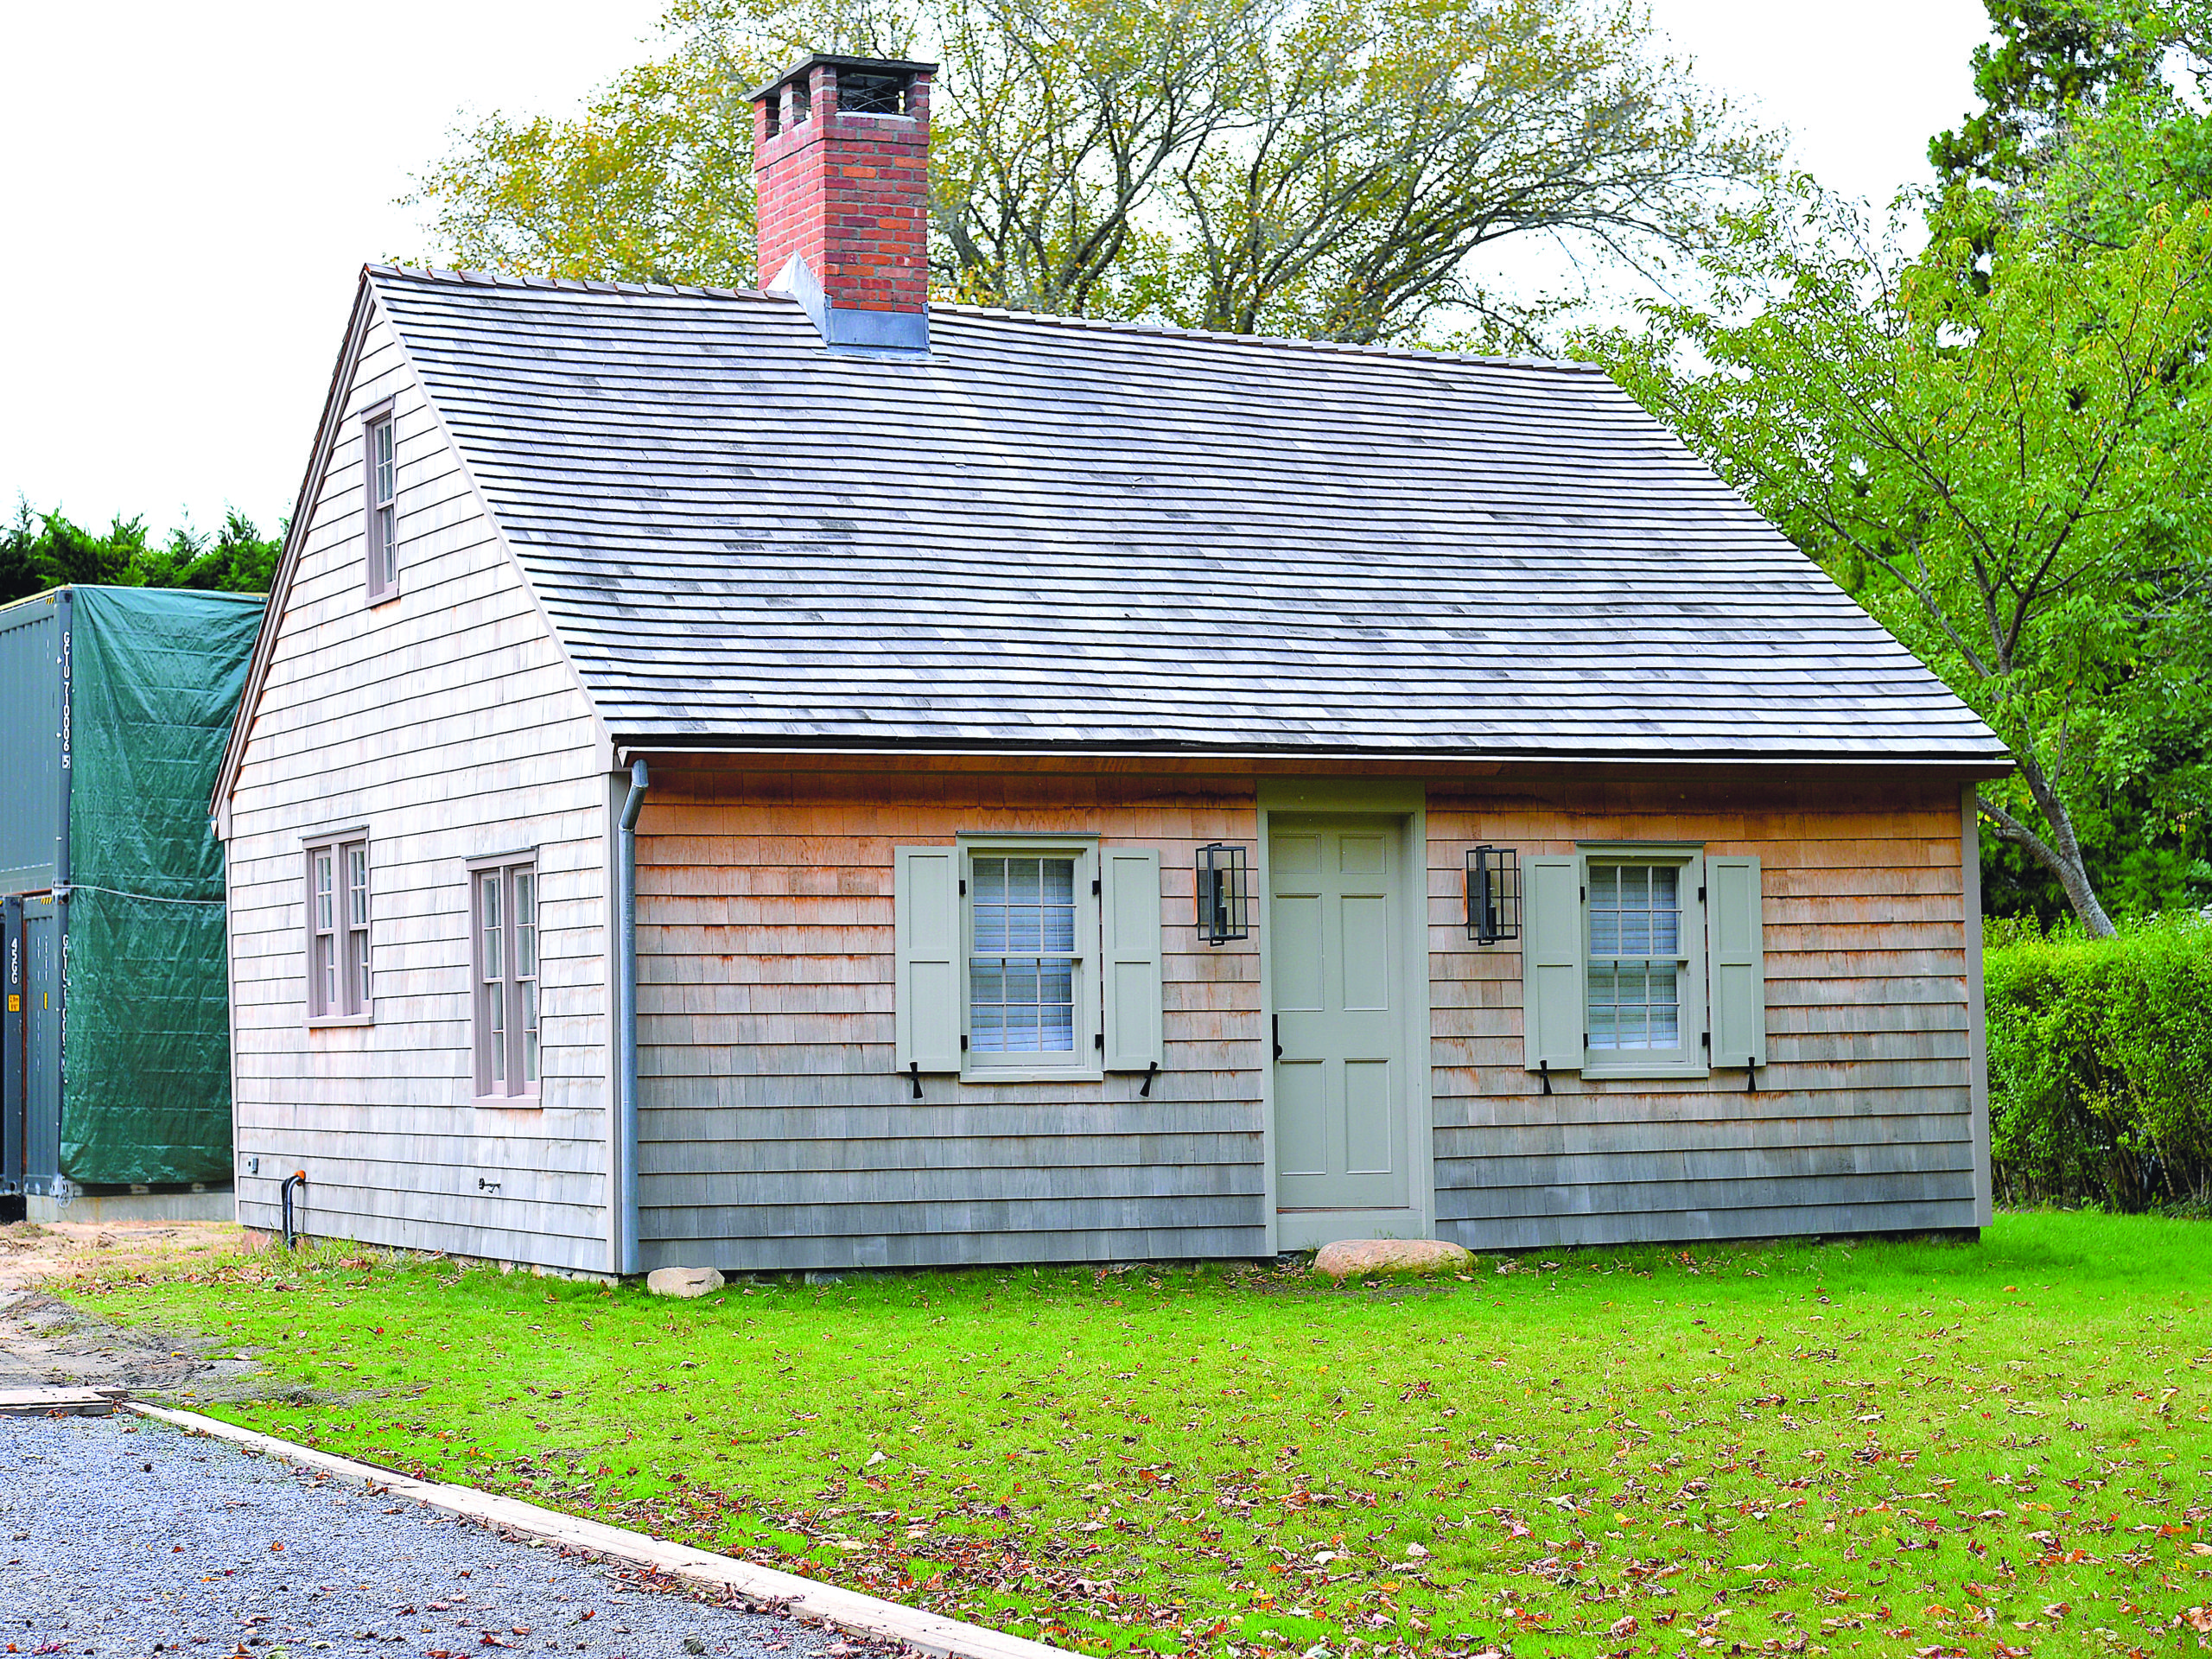 October 17 -- It was six years ago when East Hampton Village adopted its timber-frame landmarks law to protect historic buildings and incentivize their restoration. Now, the village is seeing the fruits of that legislation — the first of its kind. The Hiram Sanford House, a Cape Codstyle dwelling at 13 Egypt Lane that was once the home of the man who ran the Pantigo Windmill, has been restored, with its surviving historic details preserved. The work has been done in conjunction with the ongoing construction of a modern home on the same piece of property.